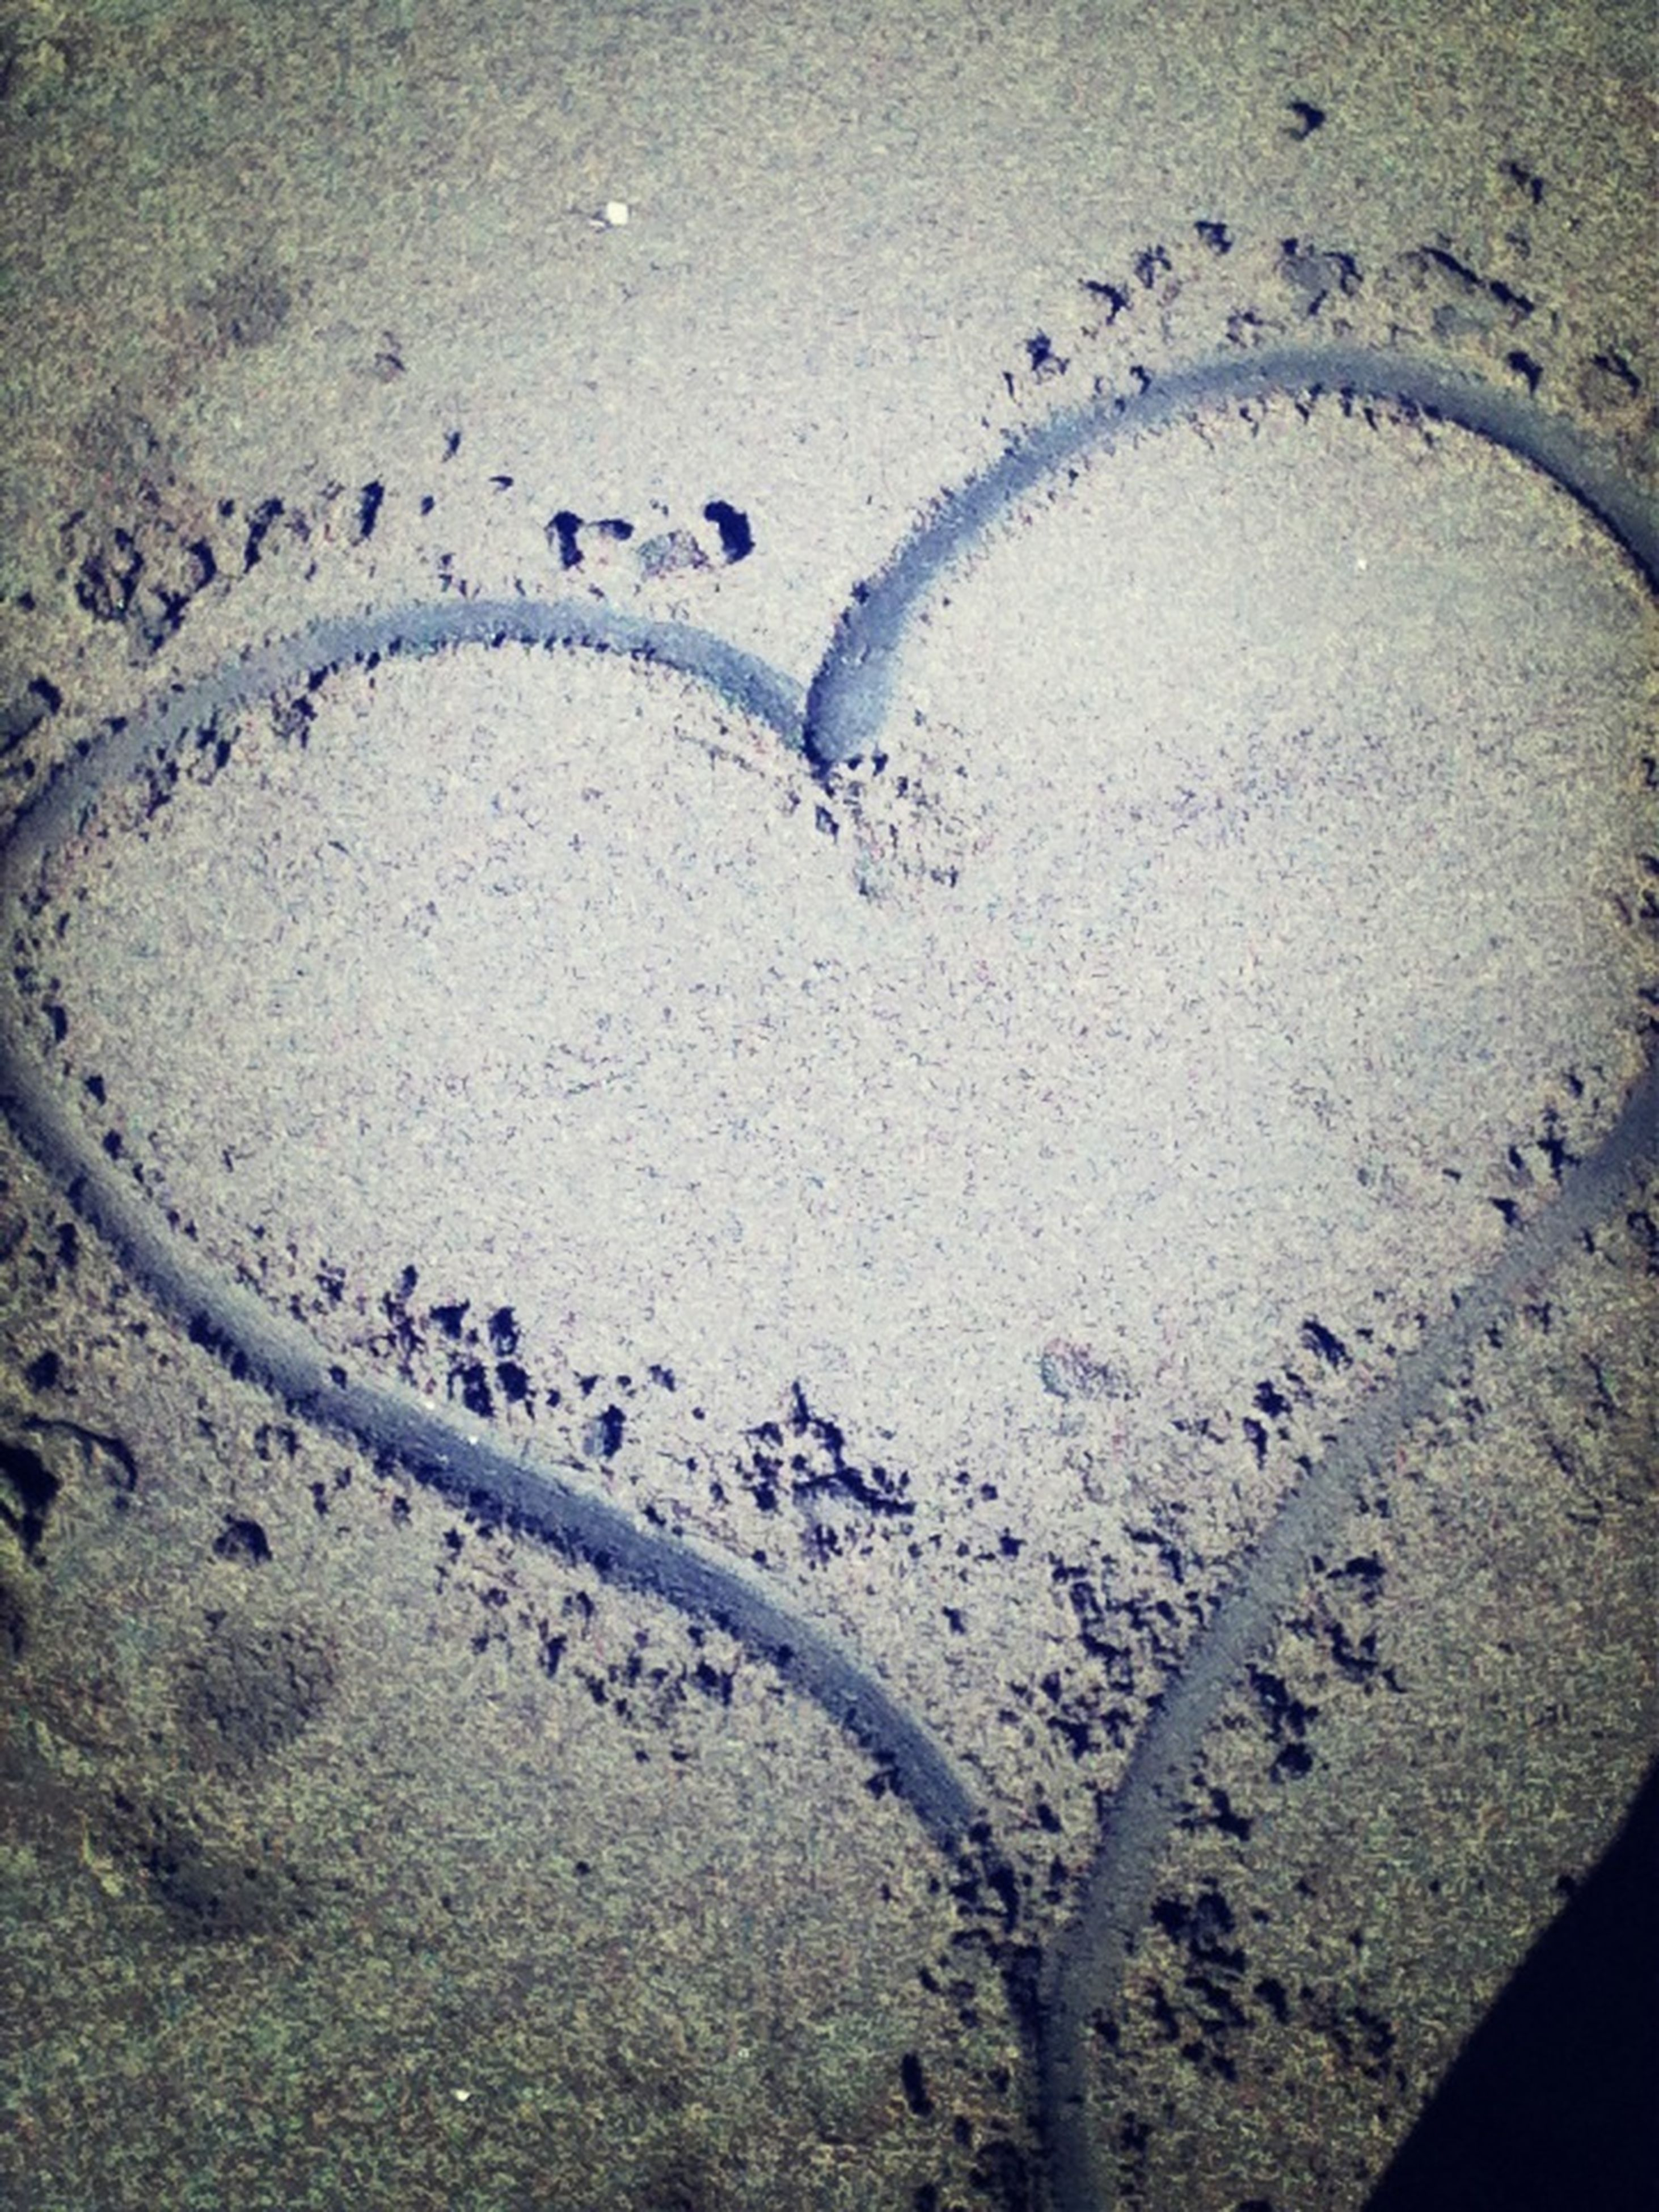 text, western script, communication, high angle view, sand, beach, heart shape, creativity, art and craft, art, wall - building feature, love, full frame, day, footprint, pattern, no people, textured, backgrounds, close-up